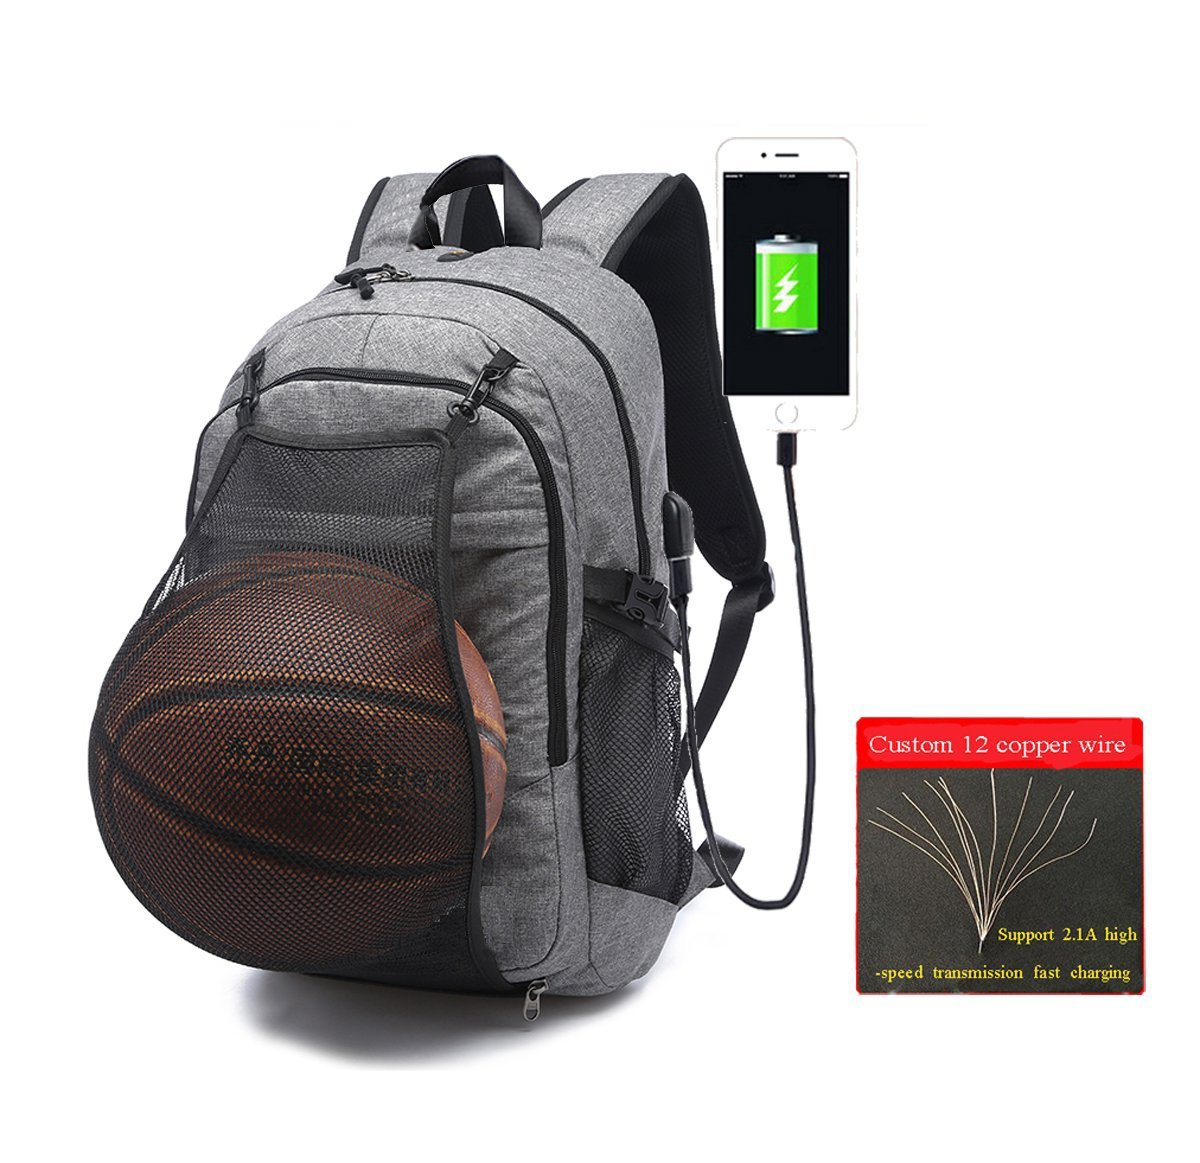 Laptop Sports Backpack, Durable Outdoor Travel Basketball Backpack – Soccer Backpack with USB Charging Port, Water Resistant College School Backpack, Gym Bag for Women Men, Fit 17.3 Laptop